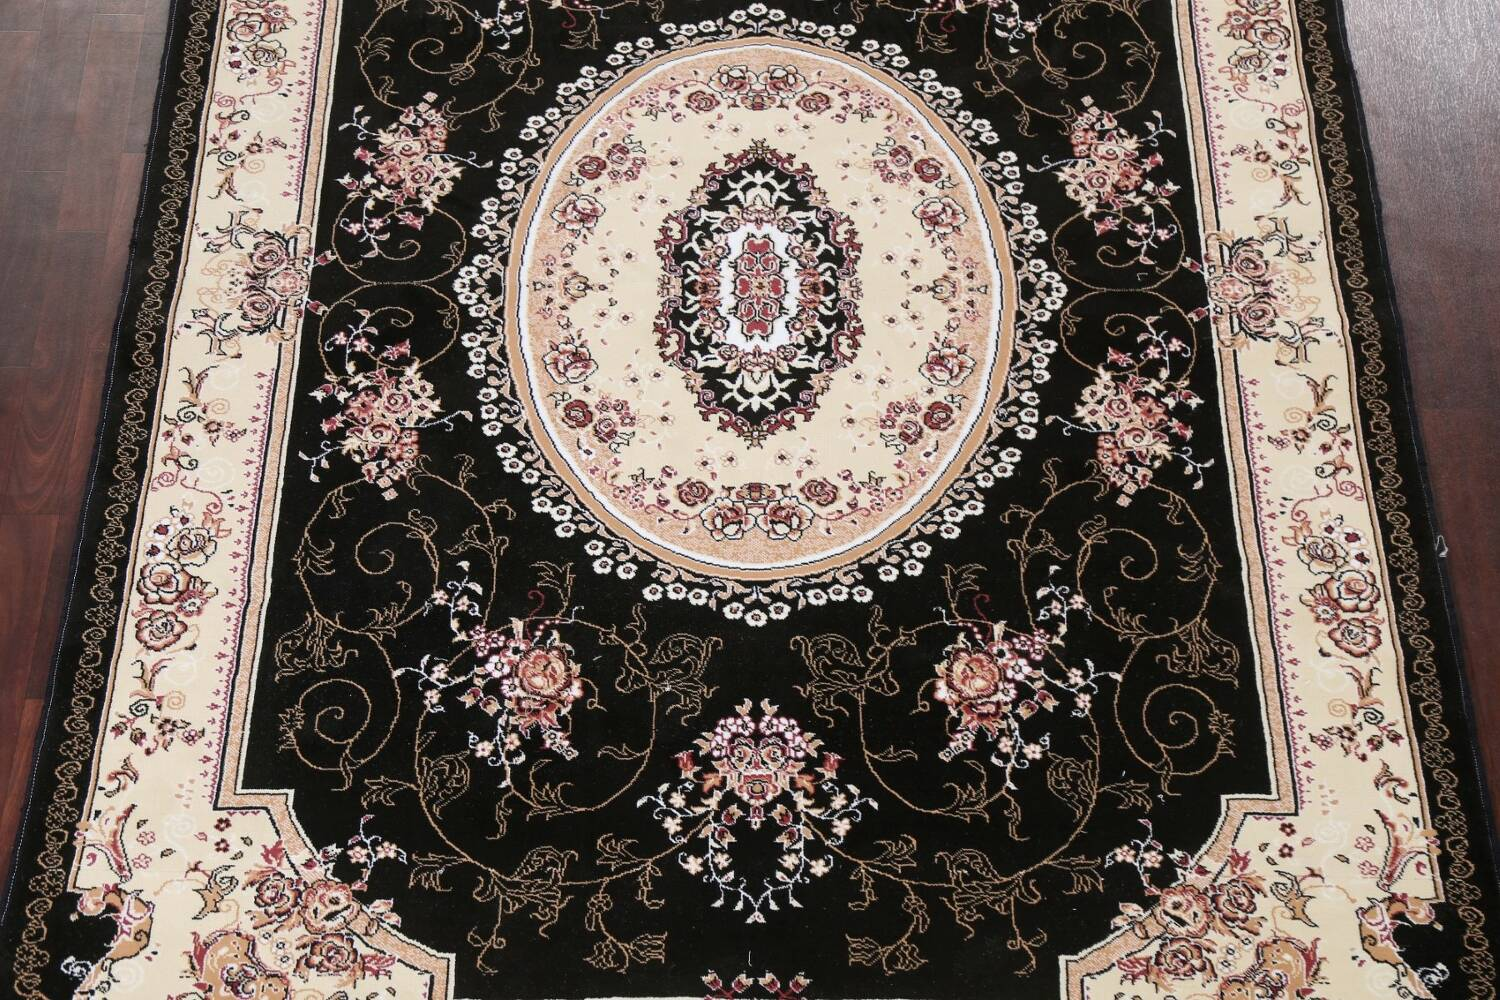 Soft Plush Floral 7x10 Isfahan Persian Area Rug image 3